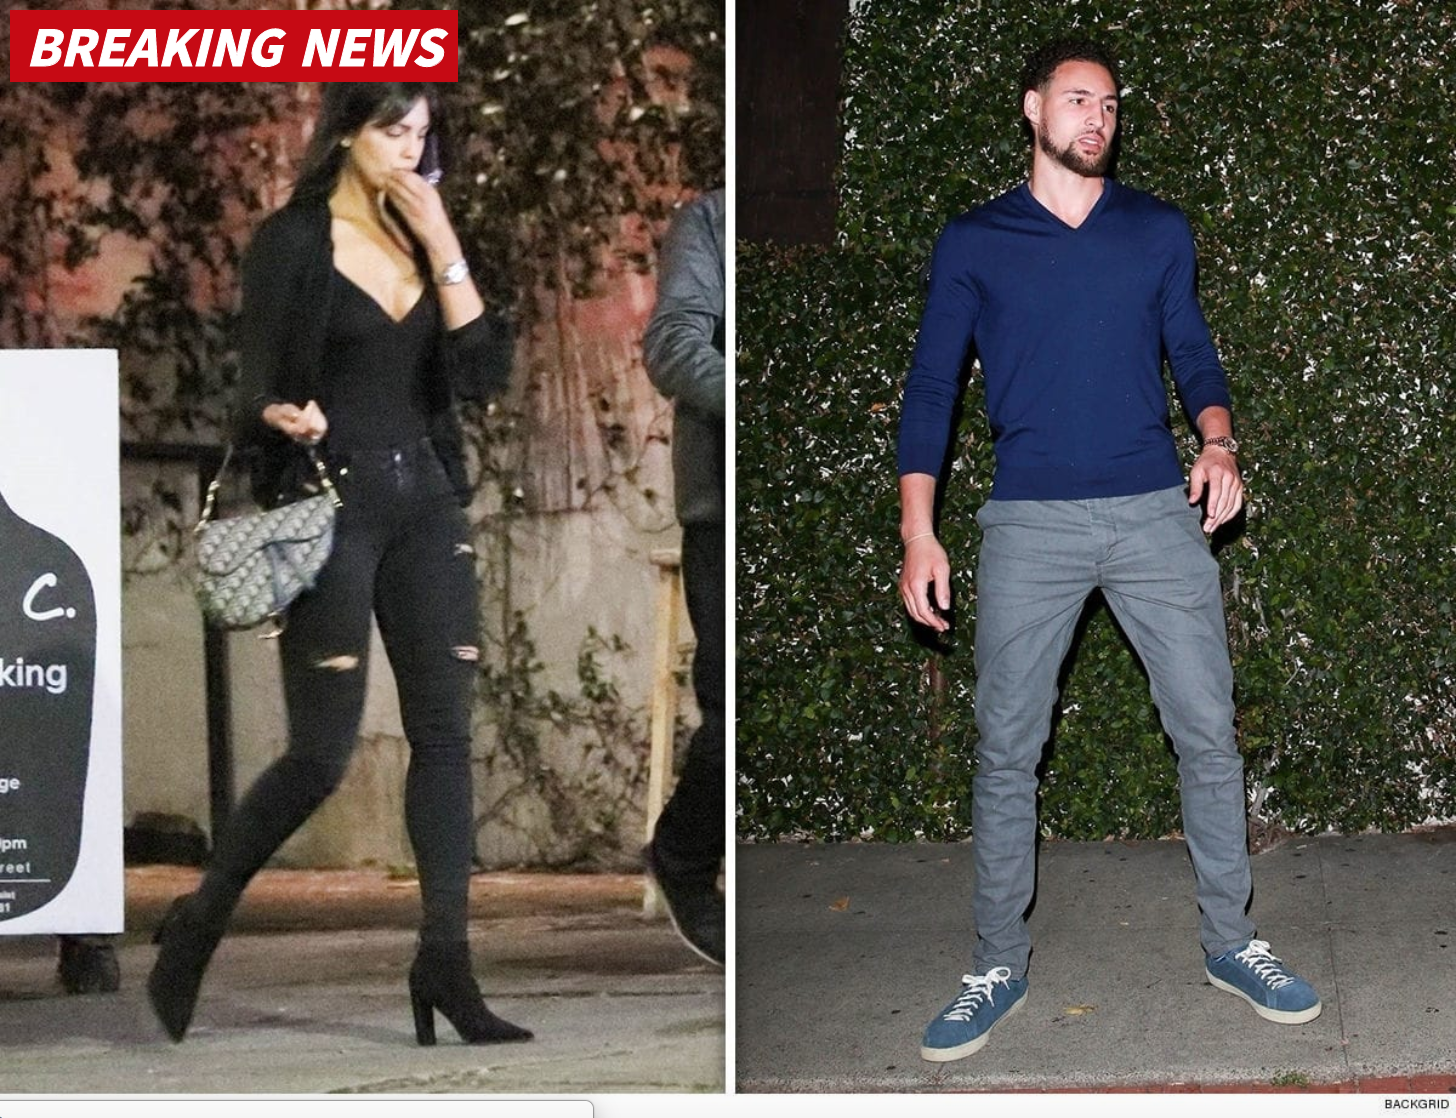 Klay Thompson Must Have Some Real BDE, Spotted Out On A Date With One Of The Hottest Women Ever